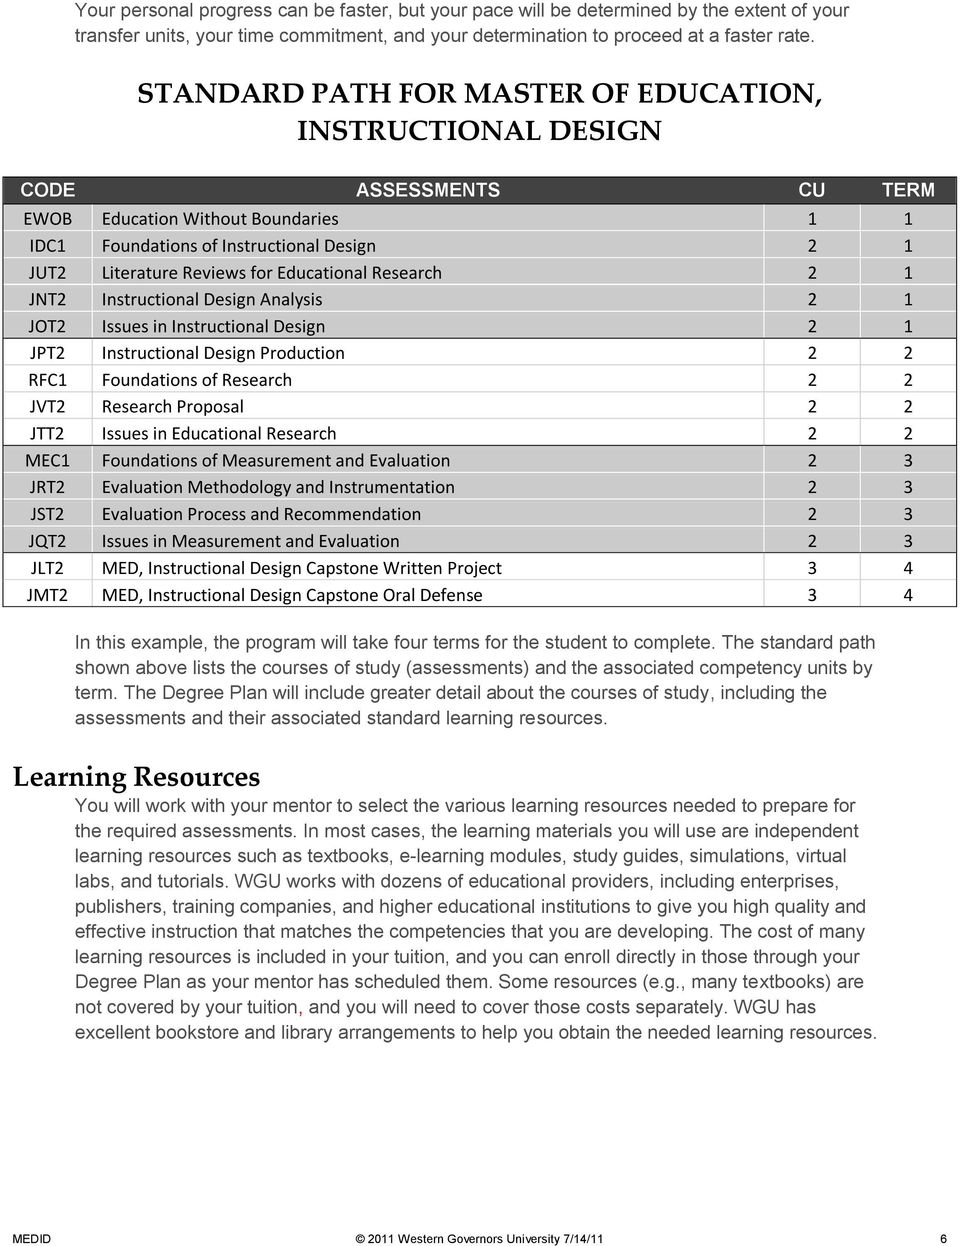 Educational Research 2 1 JNT2 Instructional Design Analysis 2 1 JOT2 Issues in Instructional Design 2 1 JPT2 Instructional Design Production 2 2 RFC1 Foundations of Research 2 2 JVT2 Research